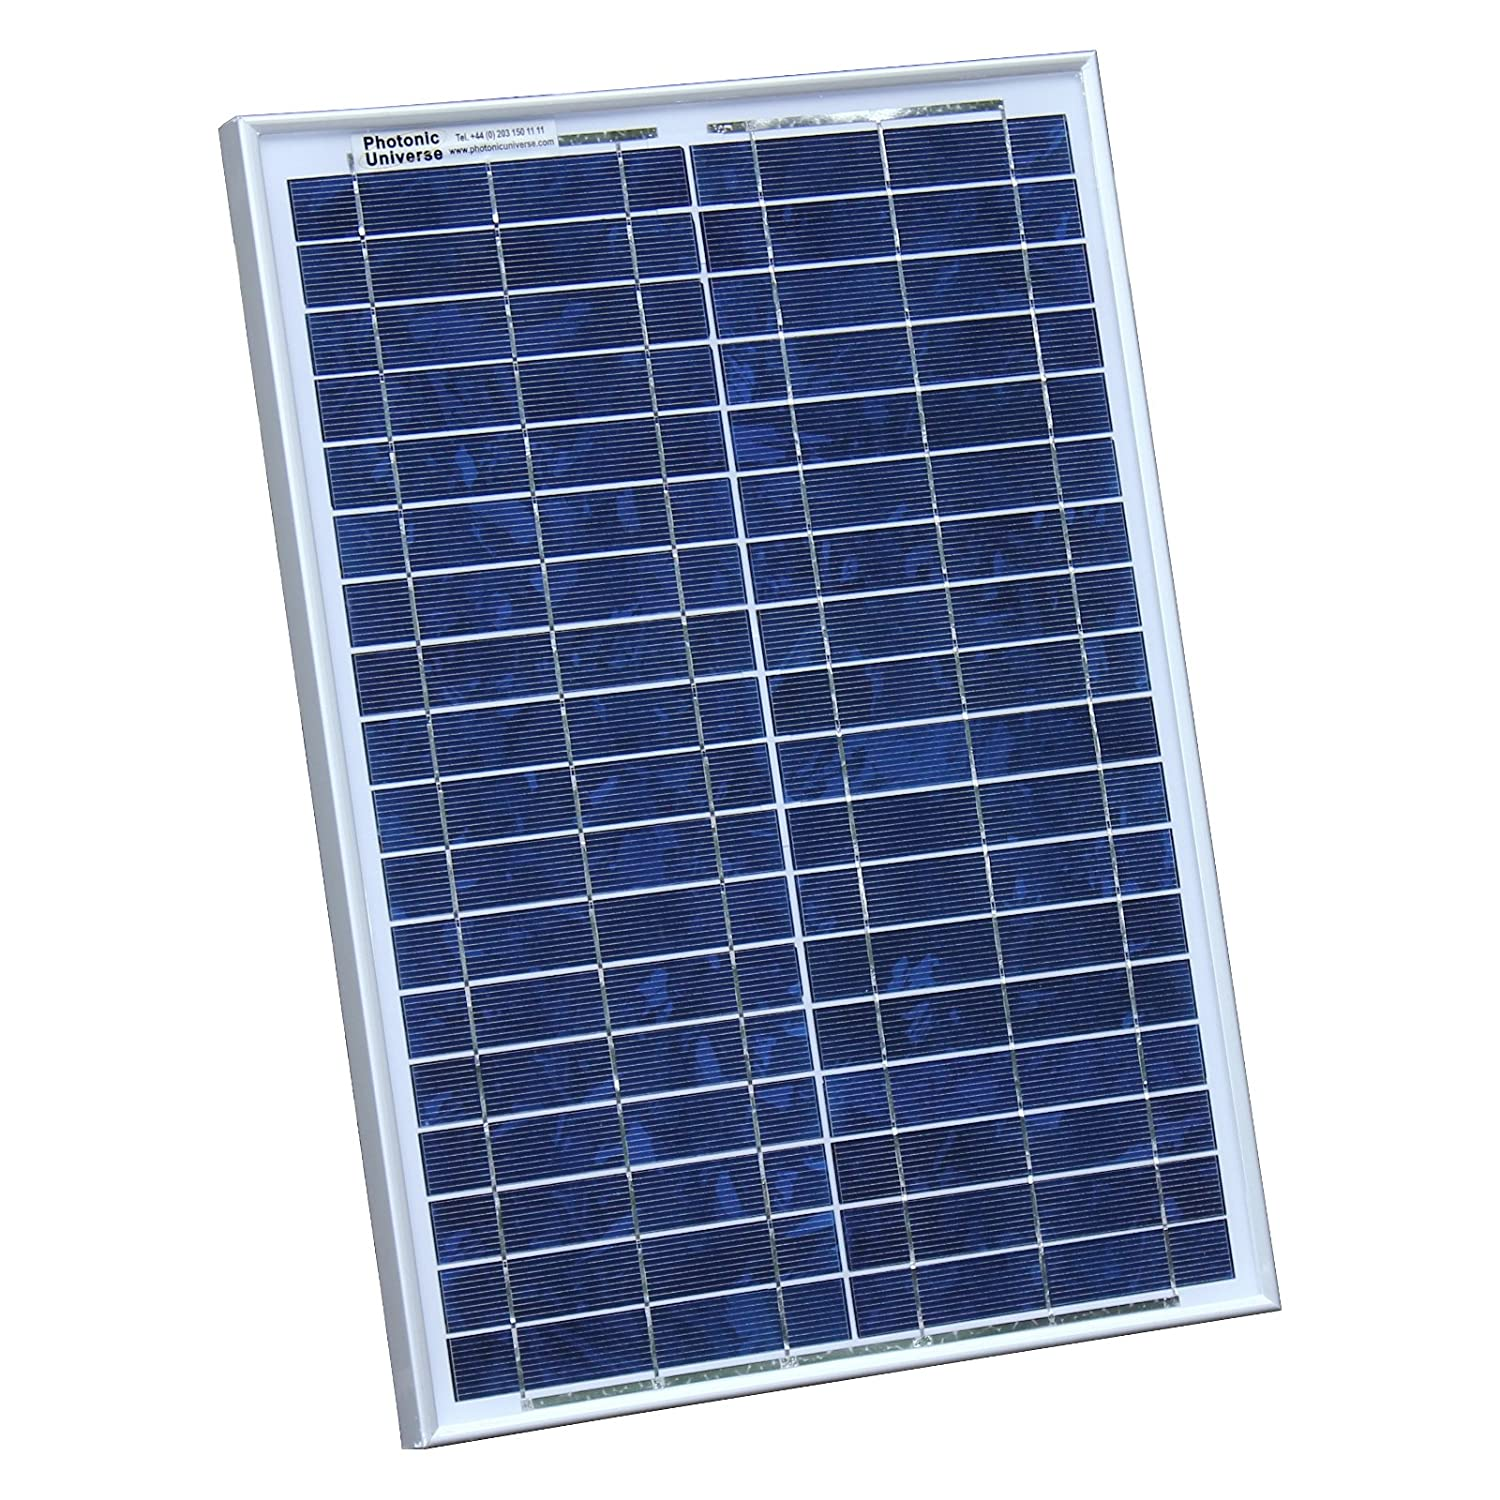 boat or any other 12V system caravan 20W Photonic Universe solar panel with 2m cable for a motorhome 20 watt campervan